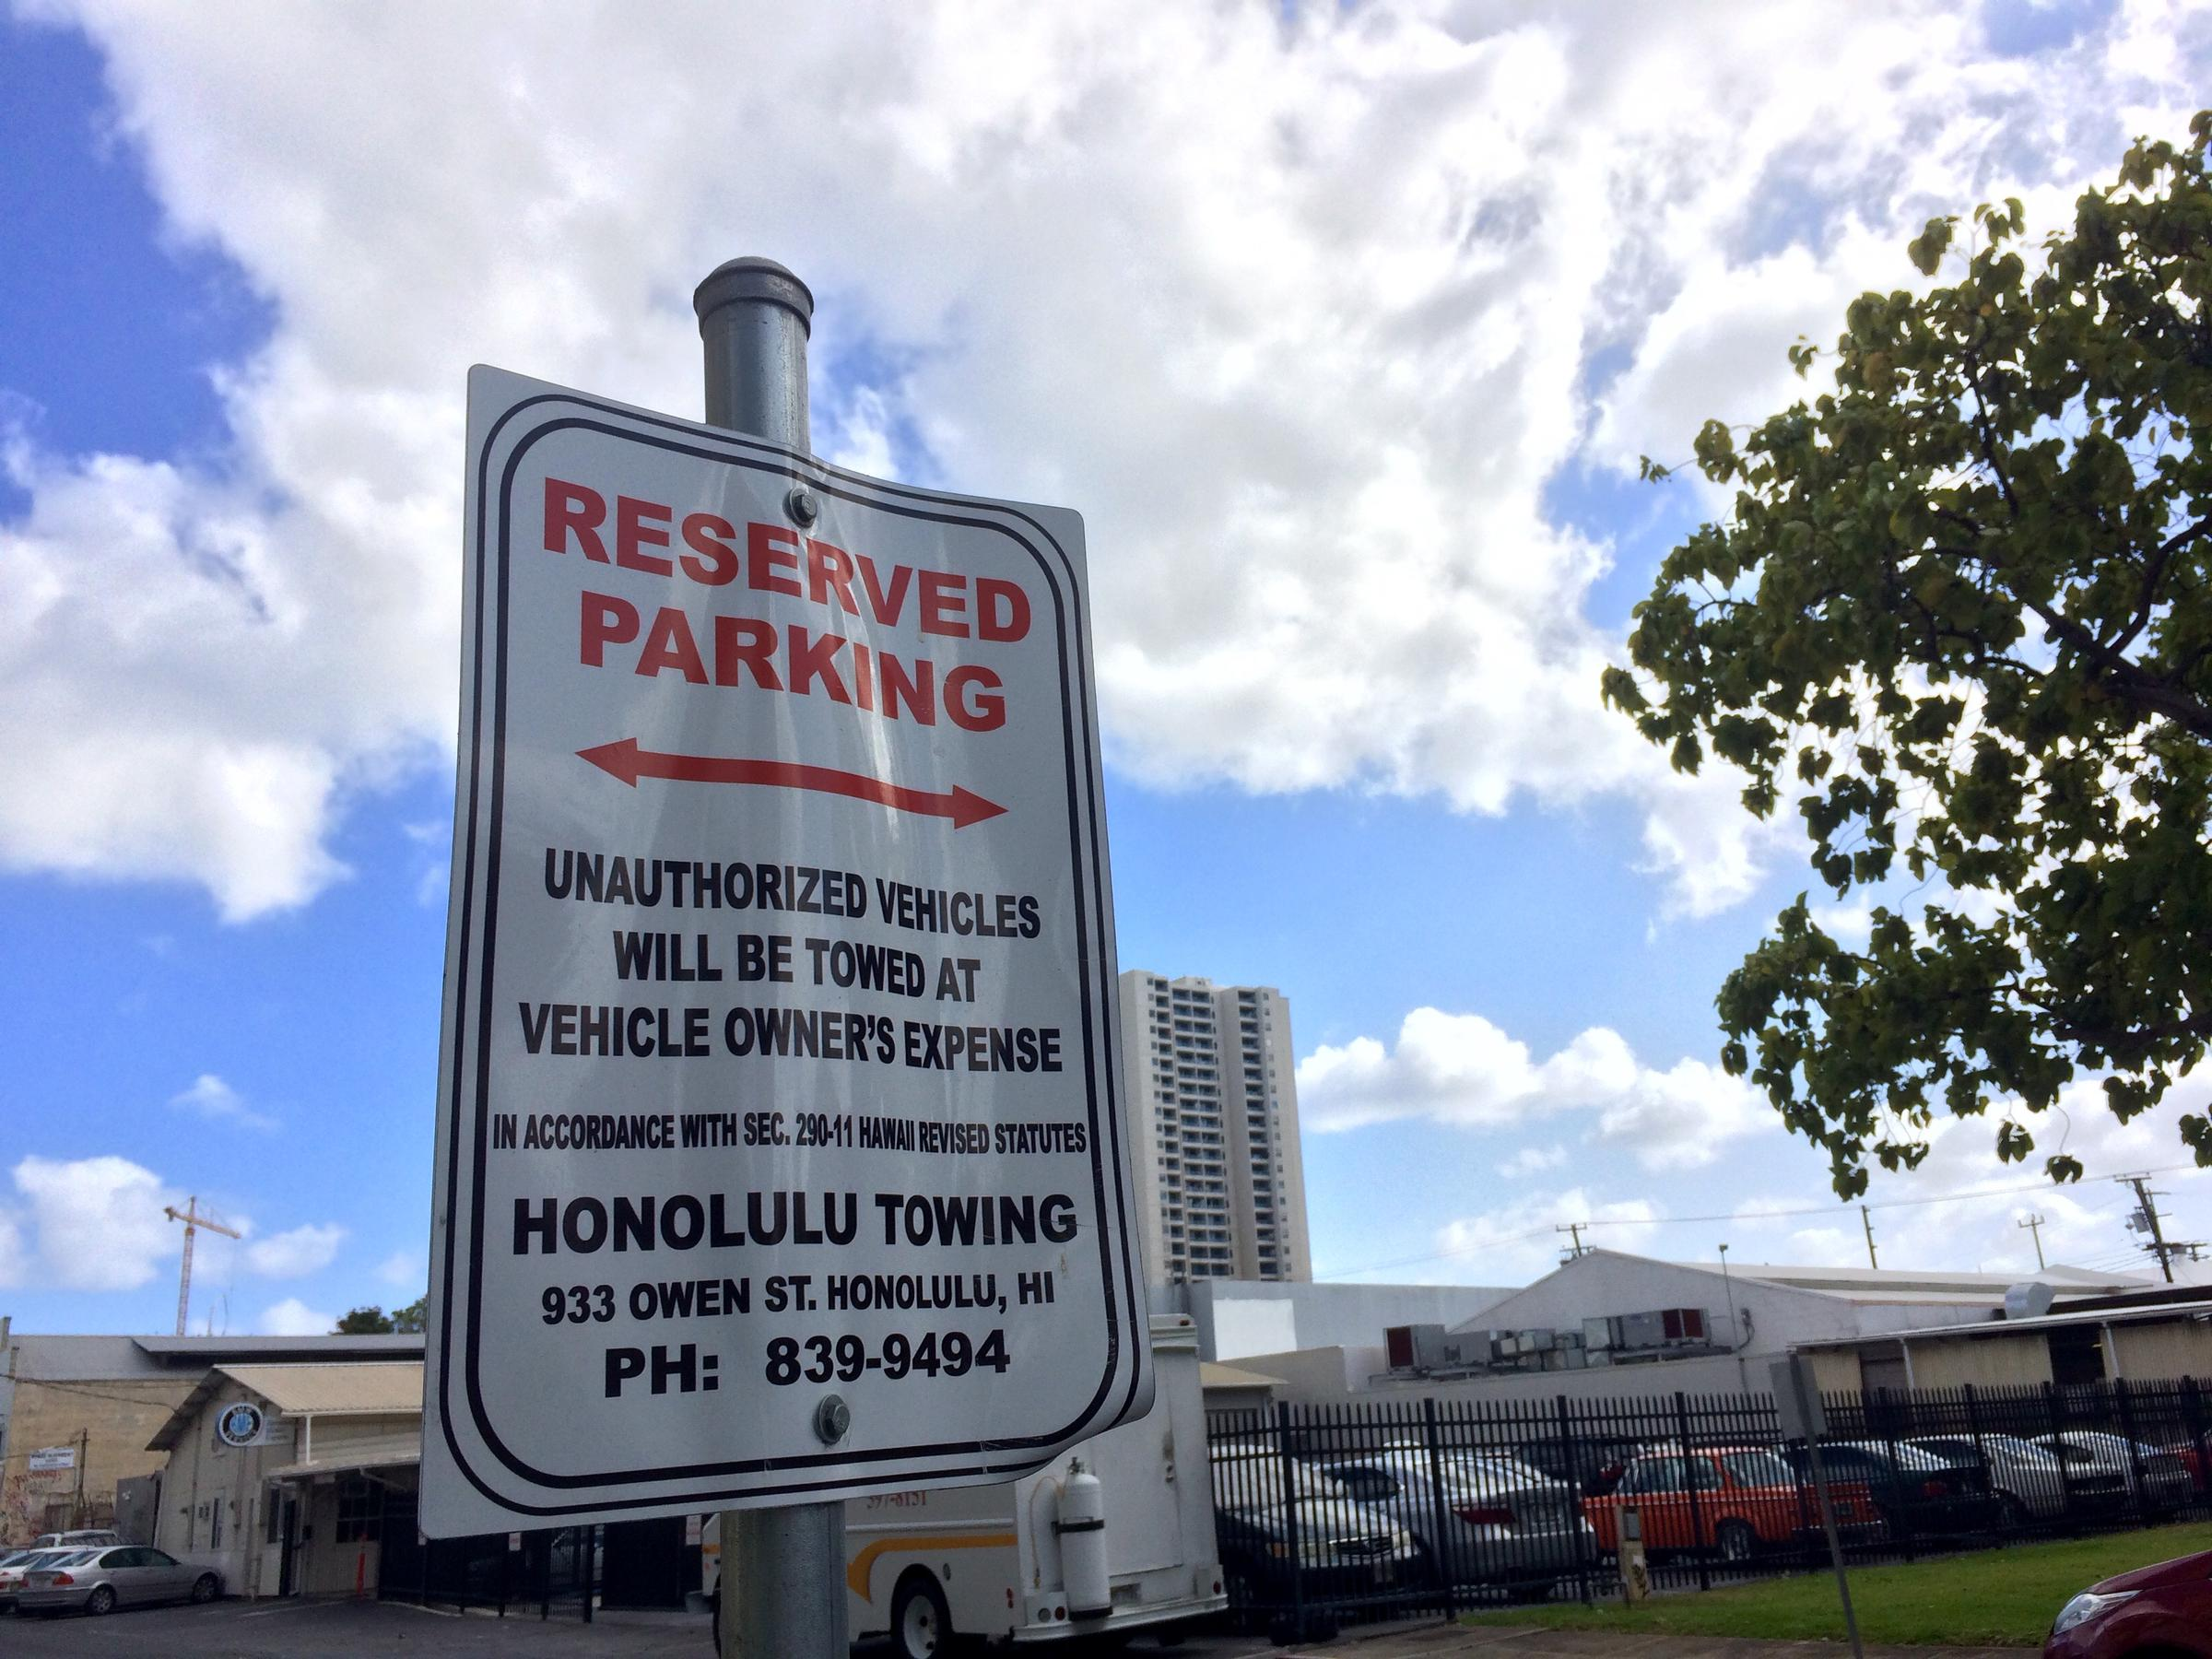 Best Place To Donate Car In Hawaii